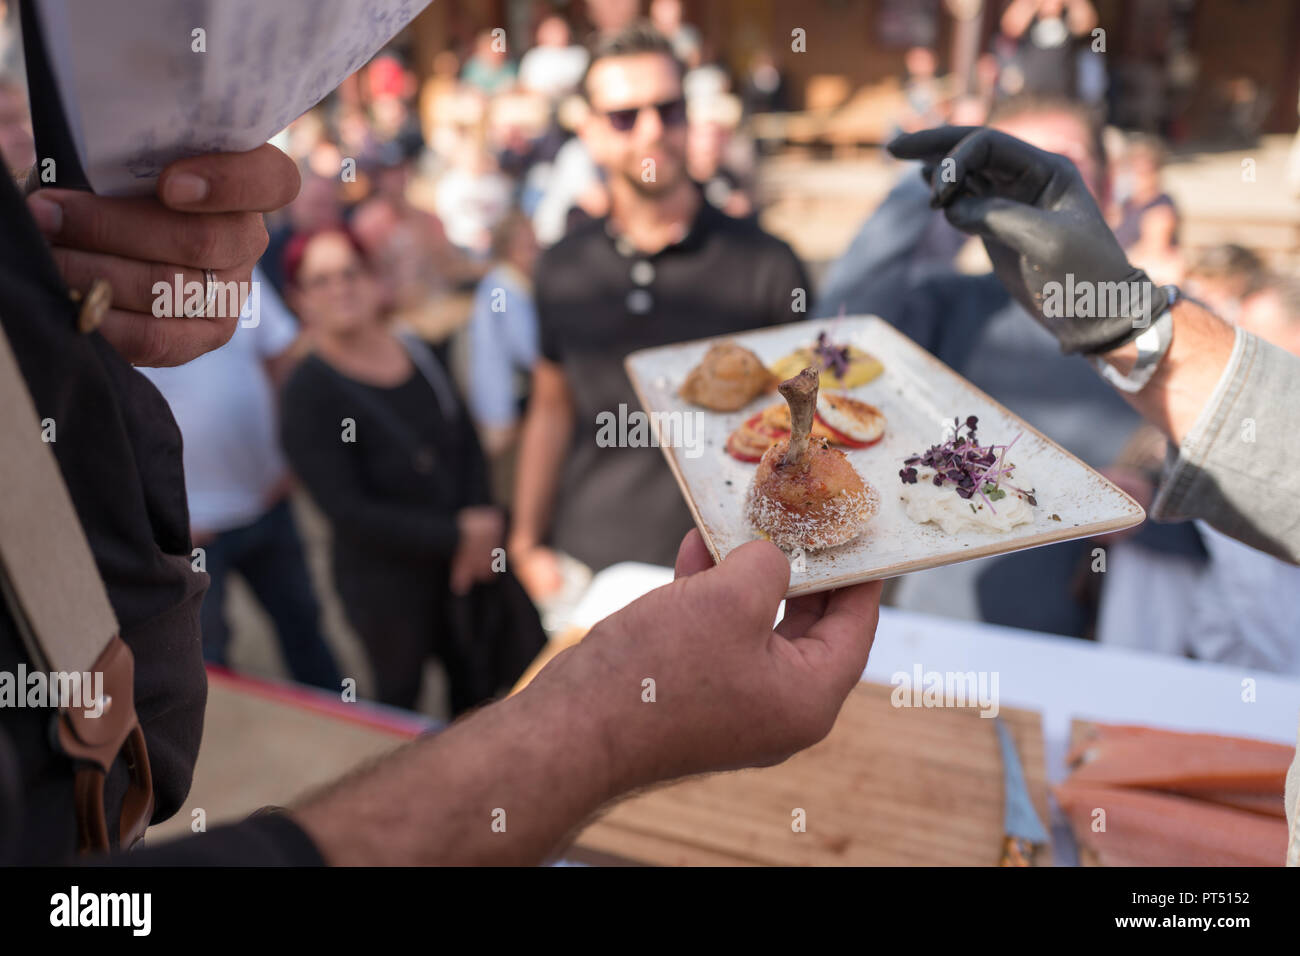 Templin, Brandenburg. 06th Oct, 2018. 06 October 2018, Germany, Templin: At the first 'Brandenburg Barbecue Championship' in the 'El Dorado Templin' one of the presented dishes with chicken legs is analysed. A total of eight teams grill around the grill crown. Credit: Jörg Carstensen/dpa/Alamy Live News - Stock Image